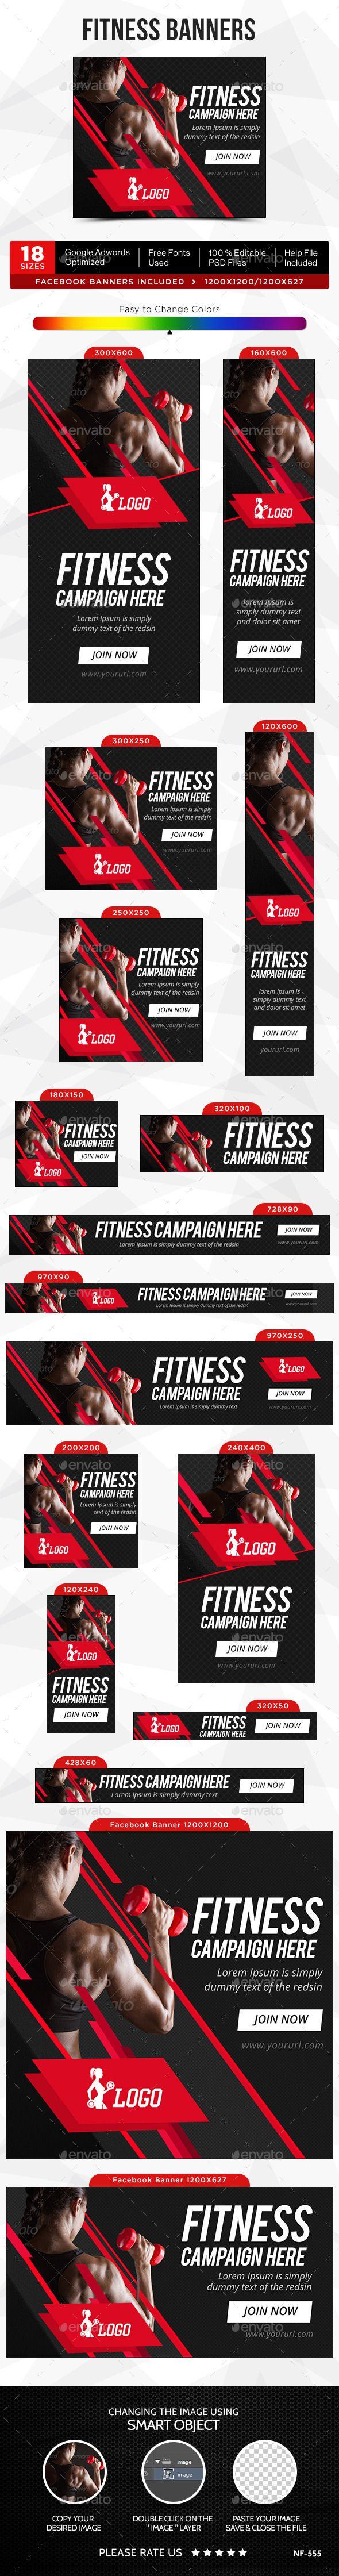 Fitness Banners Template #design #ads #web Download: http://graphicriver.net/item/fitness-banners/12473331?ref=ksioks